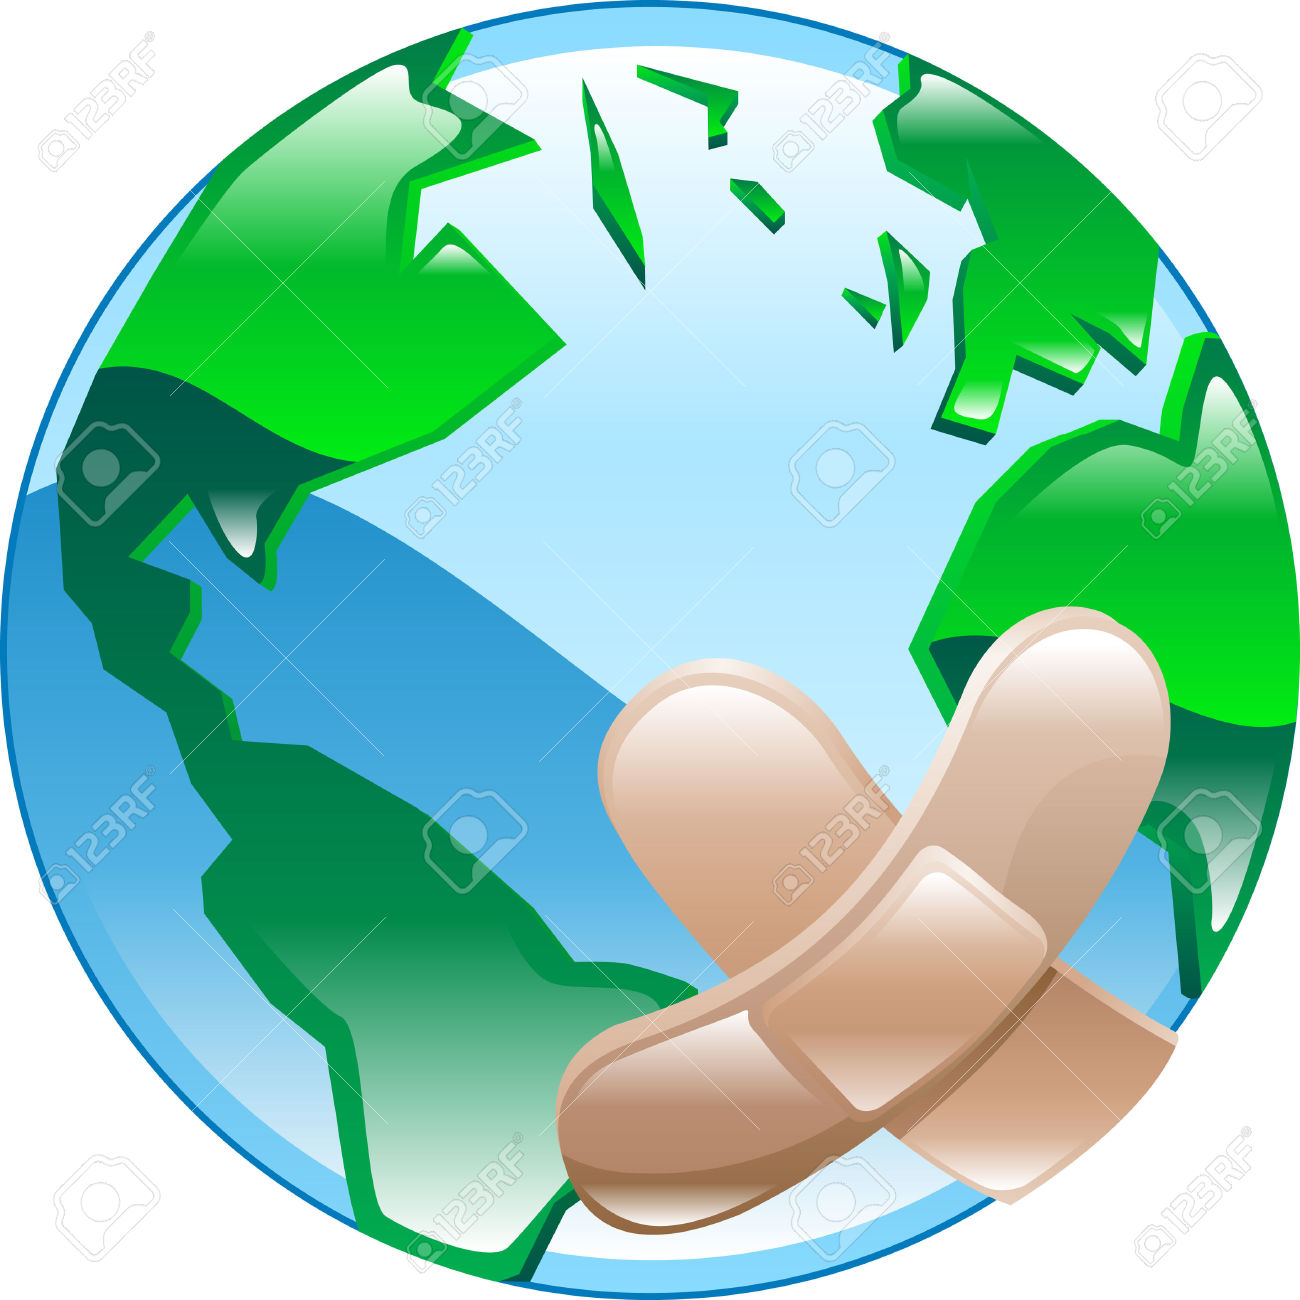 Global issues clipart.